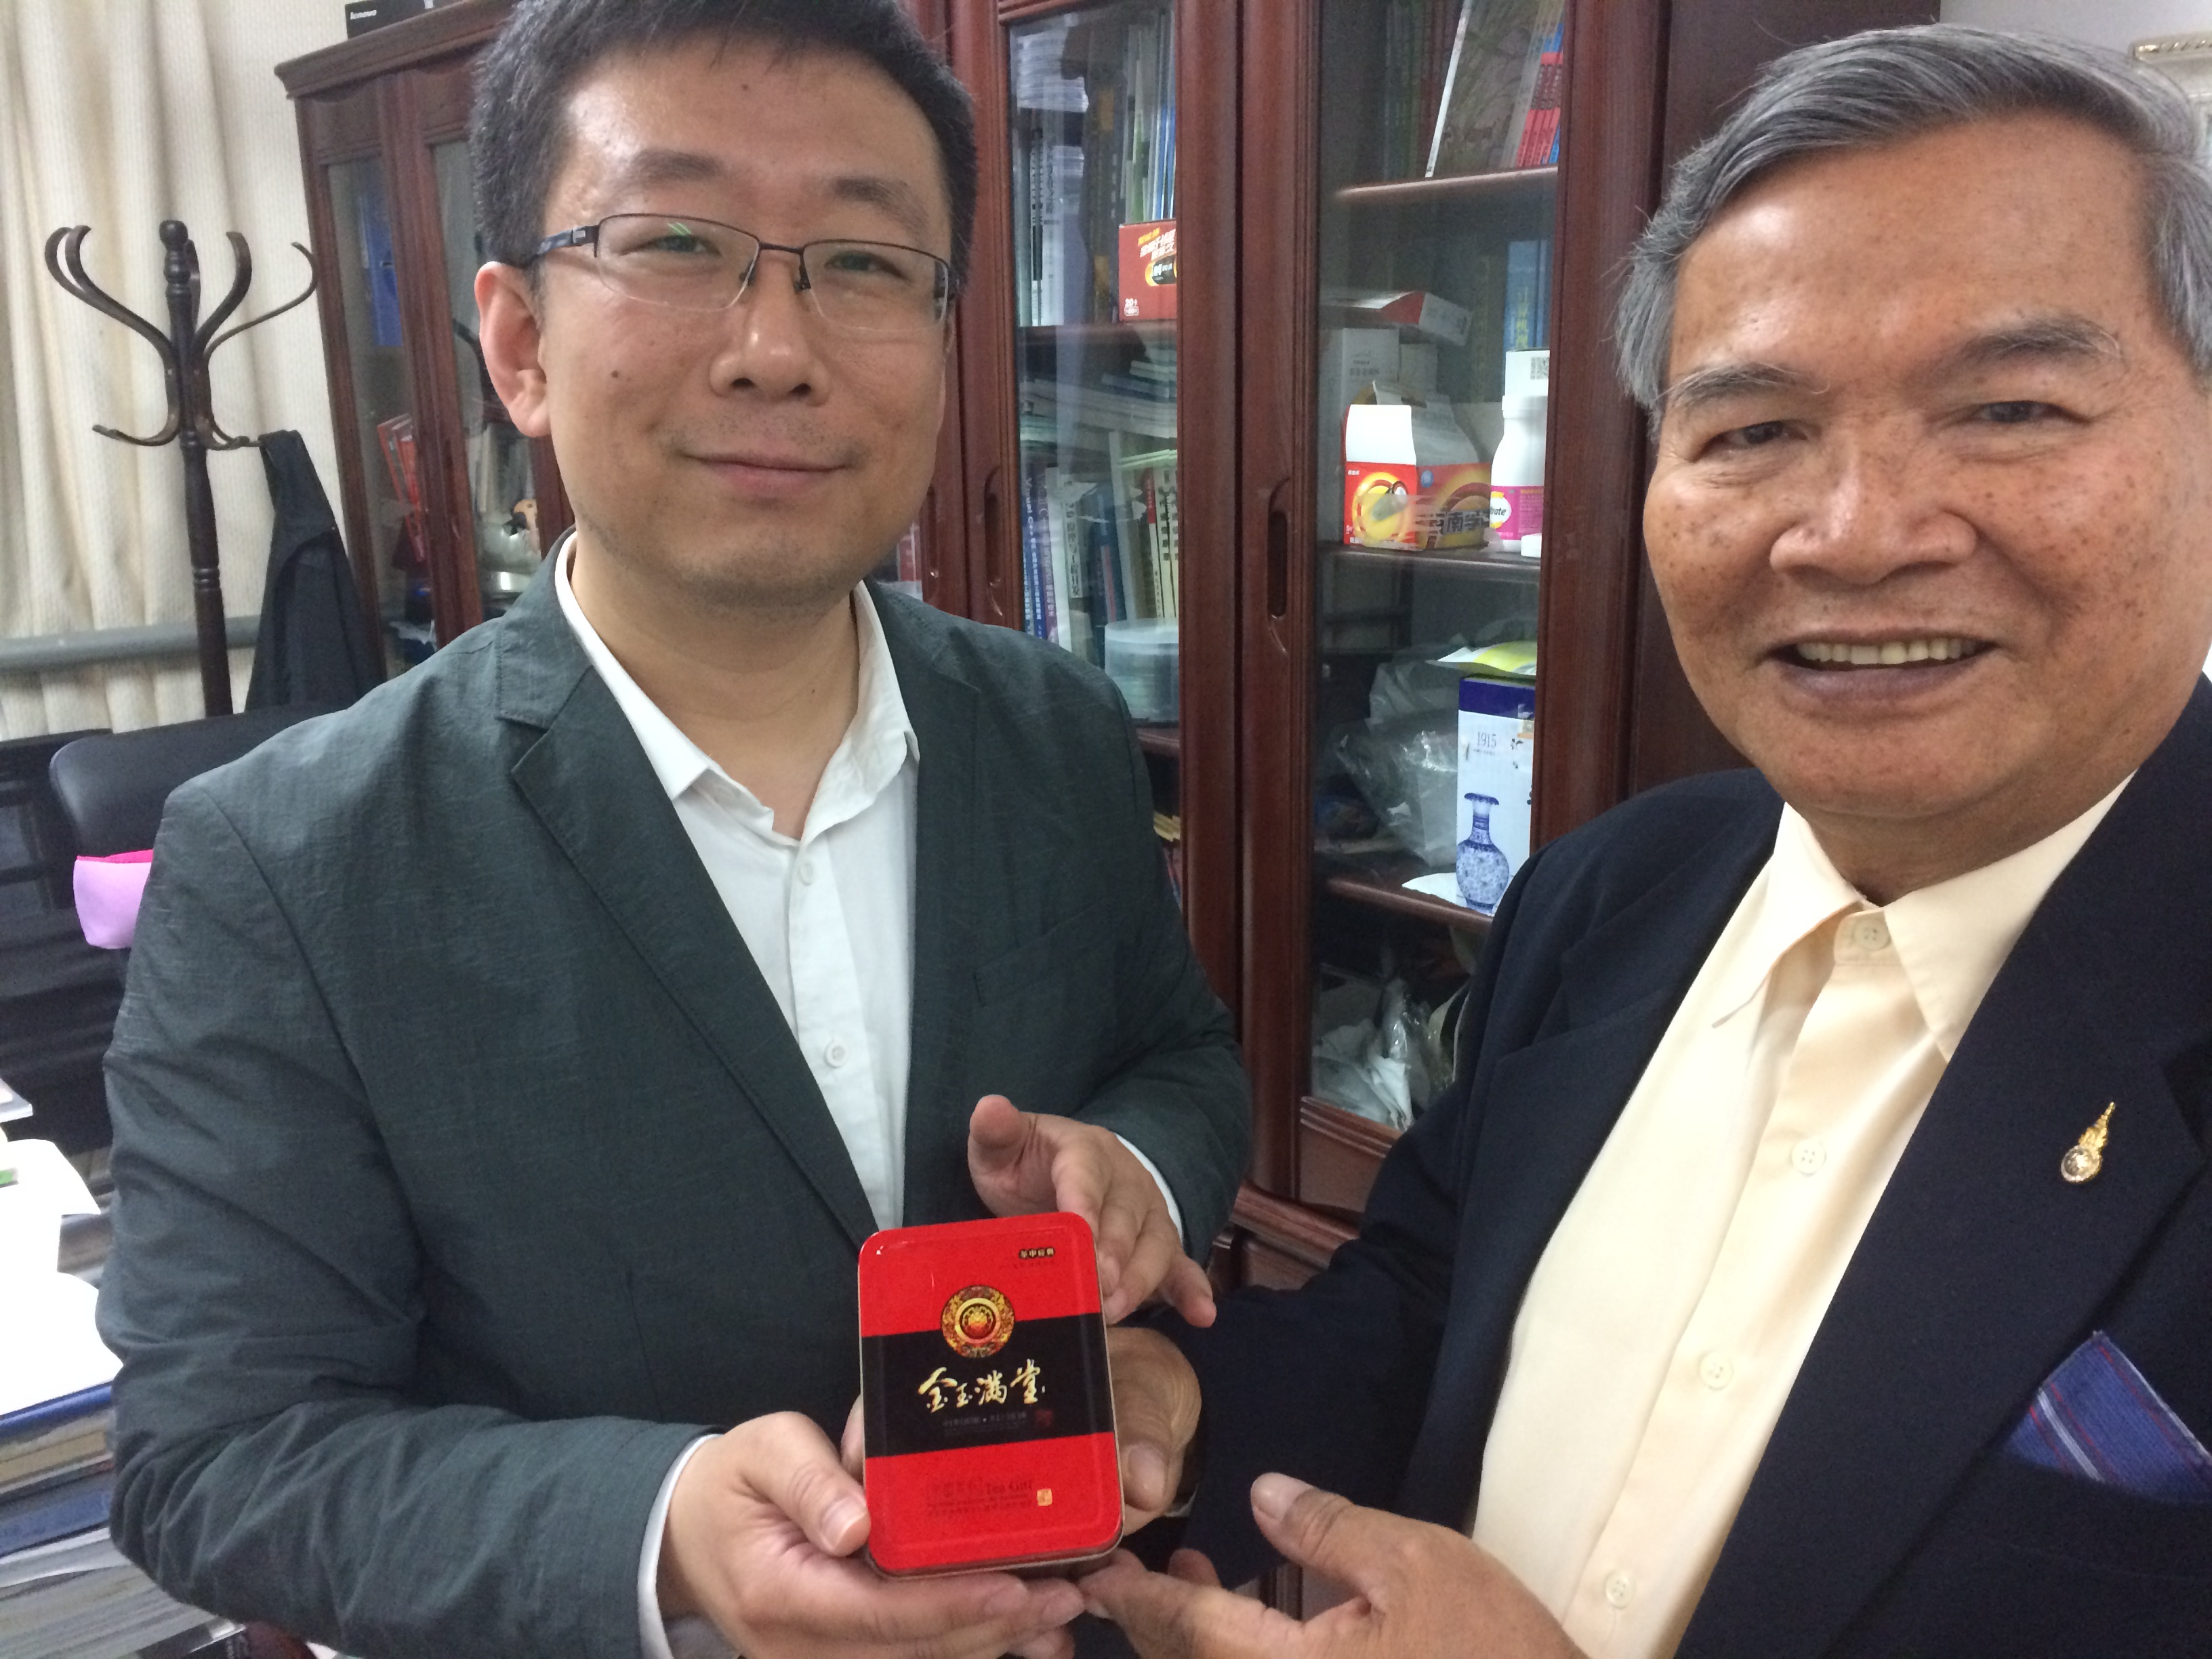 Dr.Wei Chen gave a box of tea